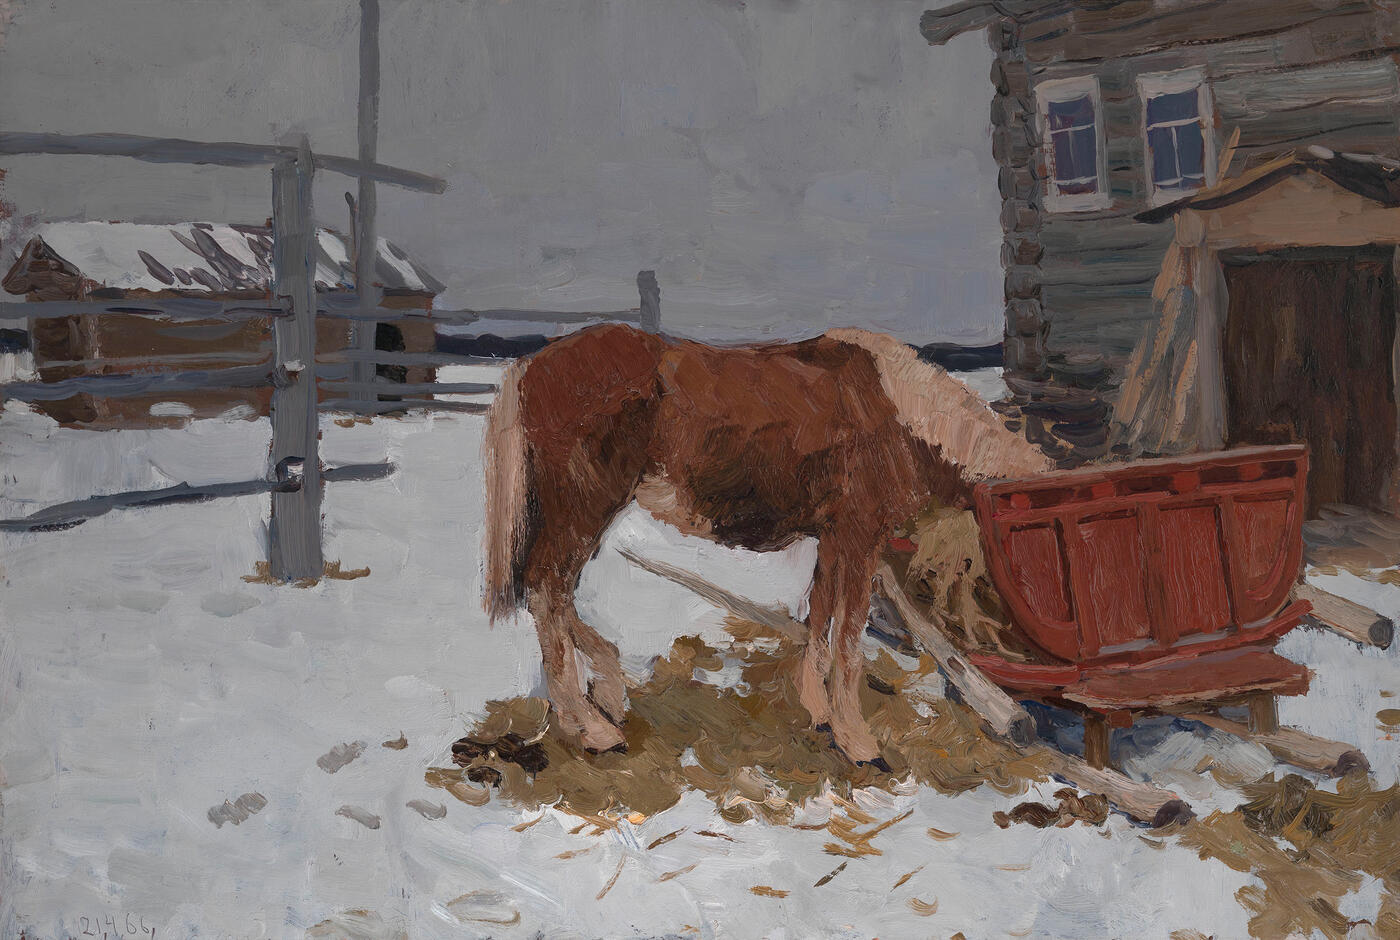 Horse and Red Sleigh